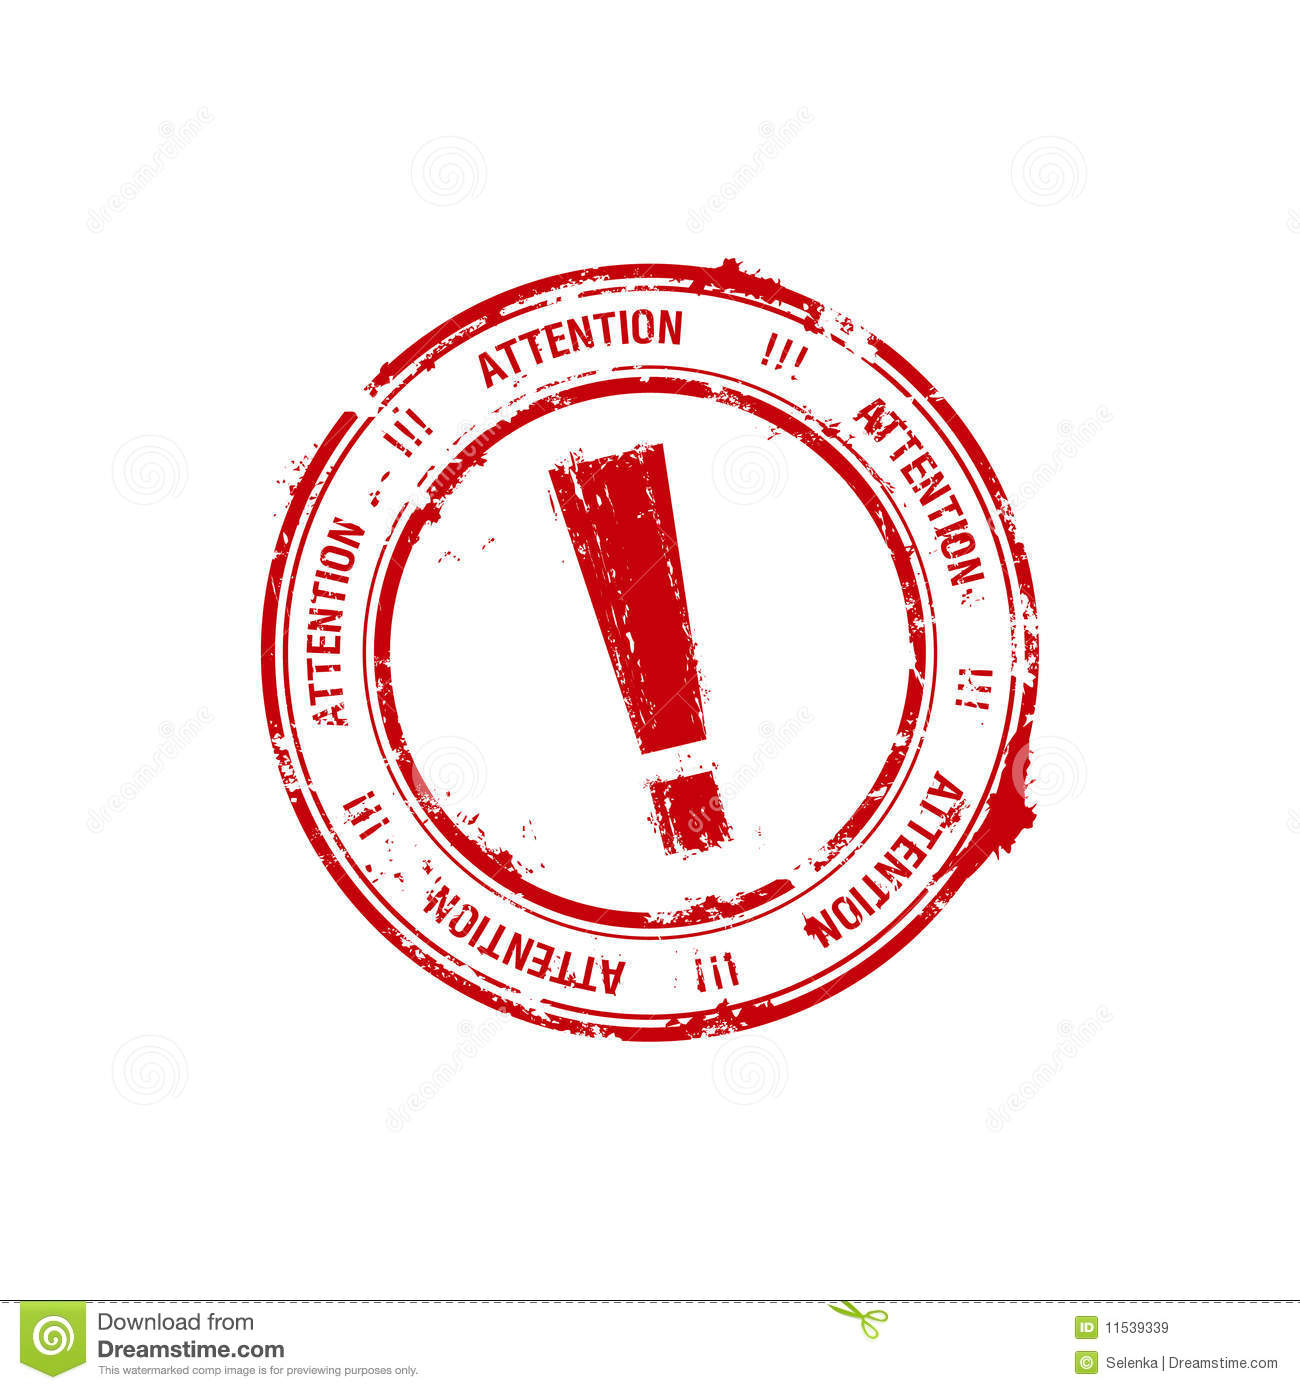 Red Rubber Stamp With The Exclamation Mark Royalty Free ...